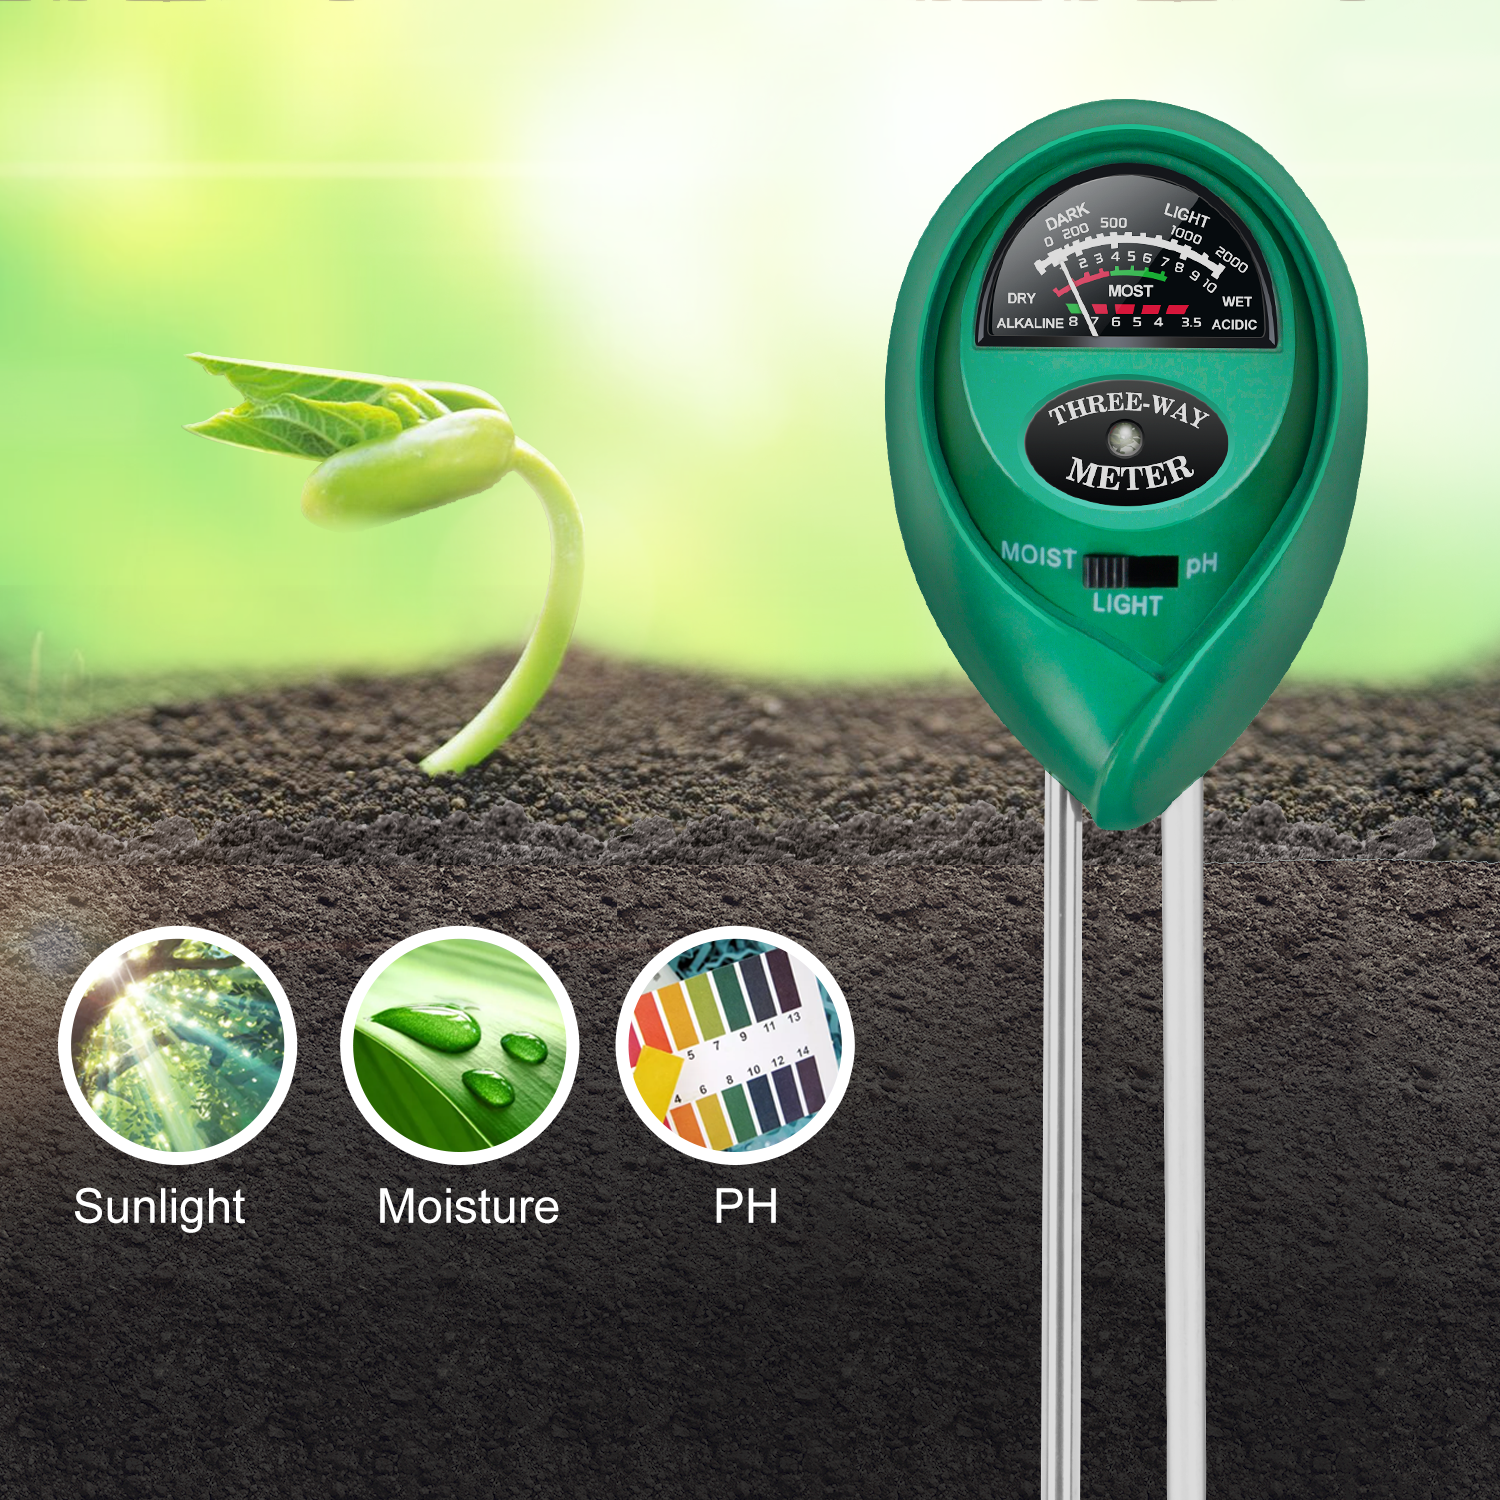 iPower Soil pH Meter, 3-in-1 Soil Test Kit for Moisture, Lig